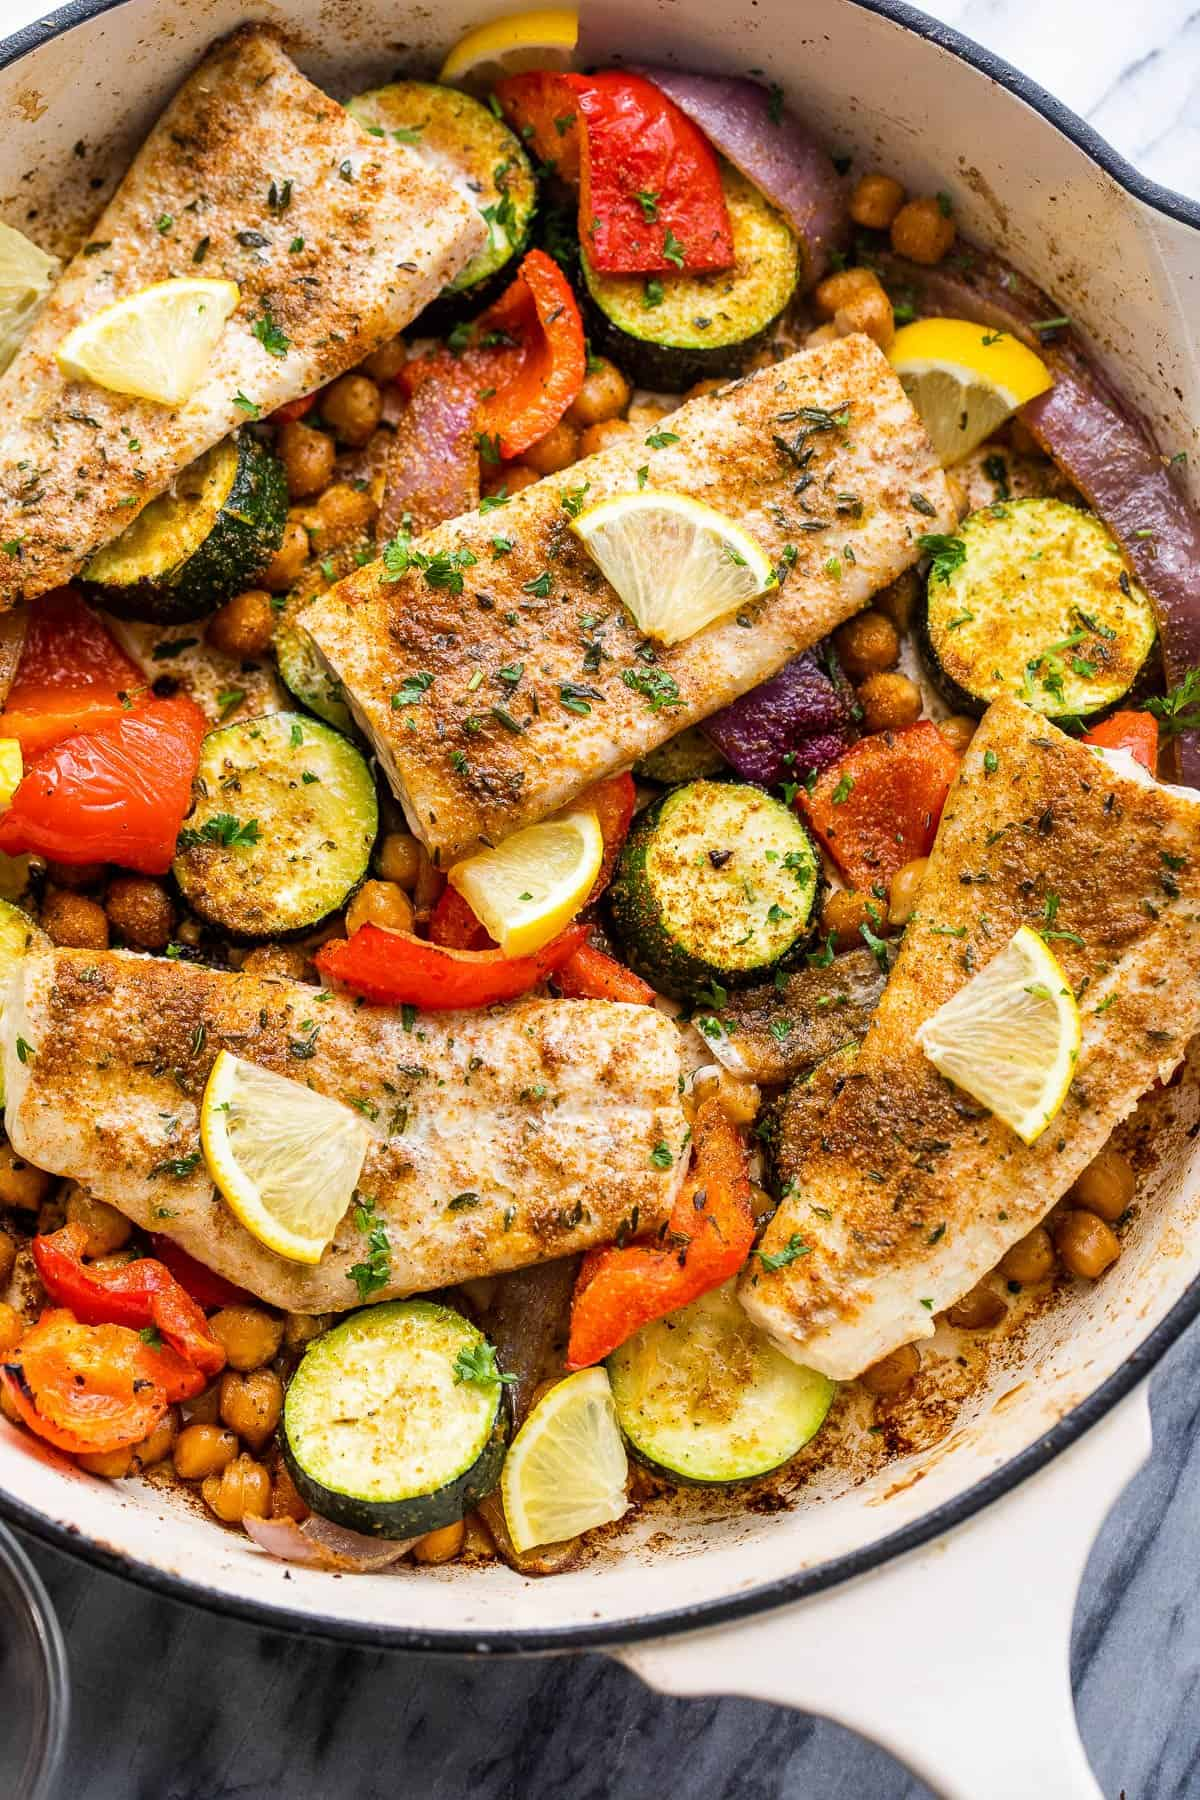 four mahi mahi fillets arranged over zucchini, chickpeas, onions, and peppers